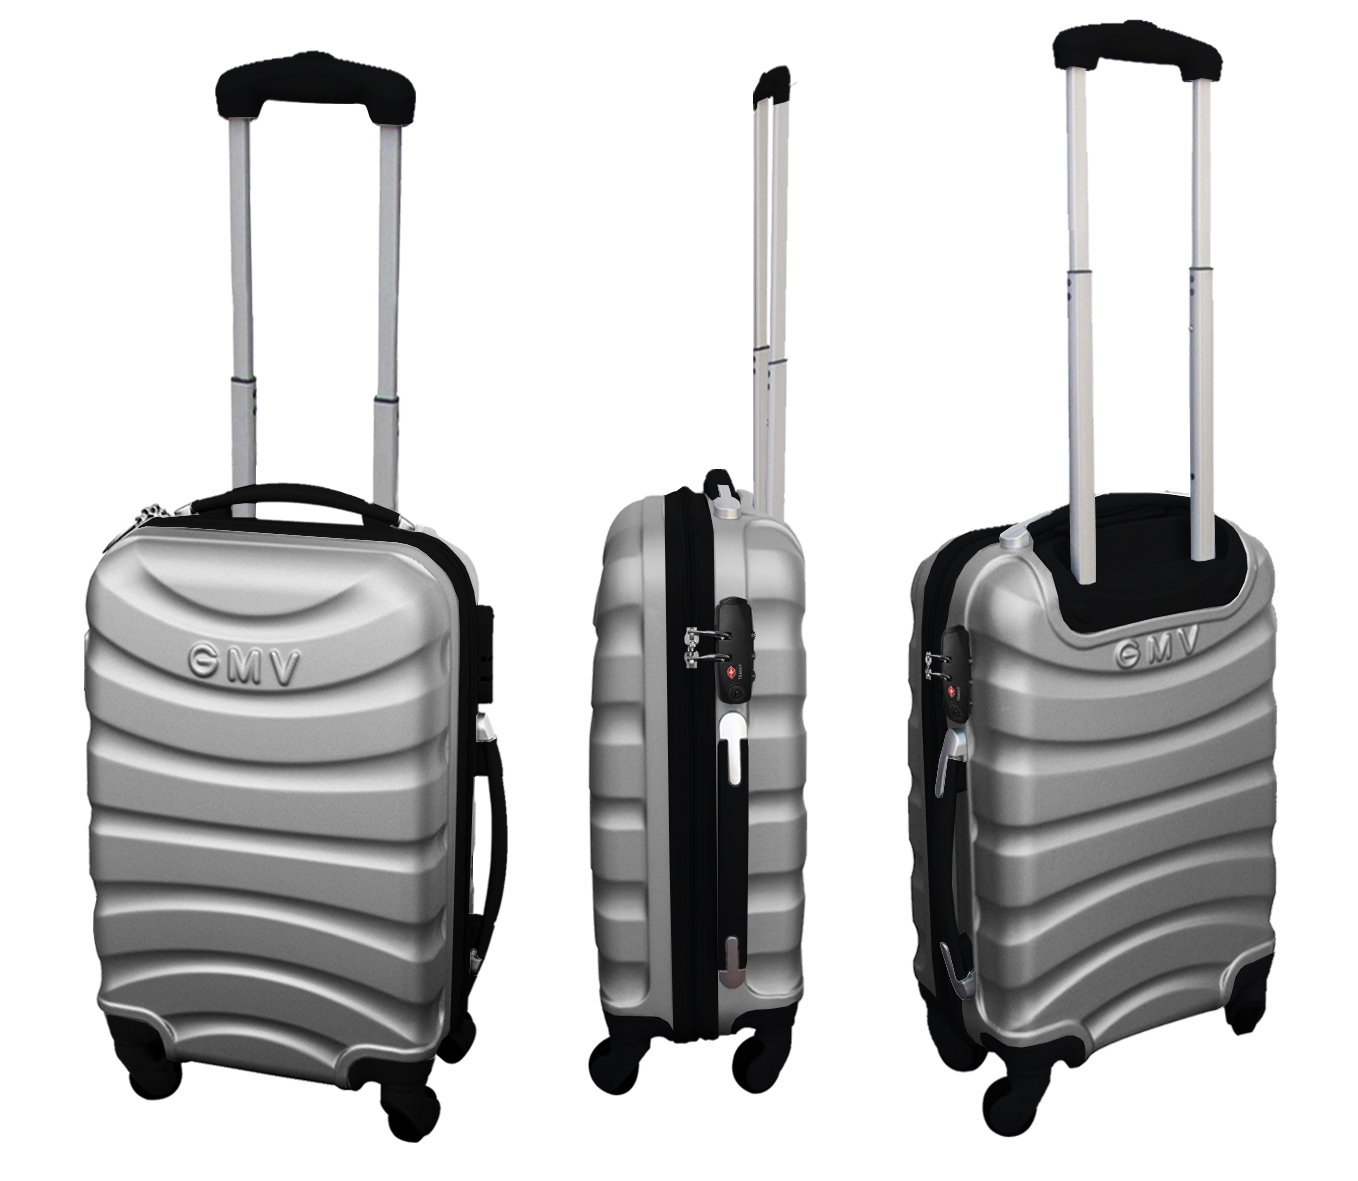 Argent Couple Chariot Cabine Valise Hand Dur Bagages Cabine Size GianMarcoVenturi 018//D/_ Rouge